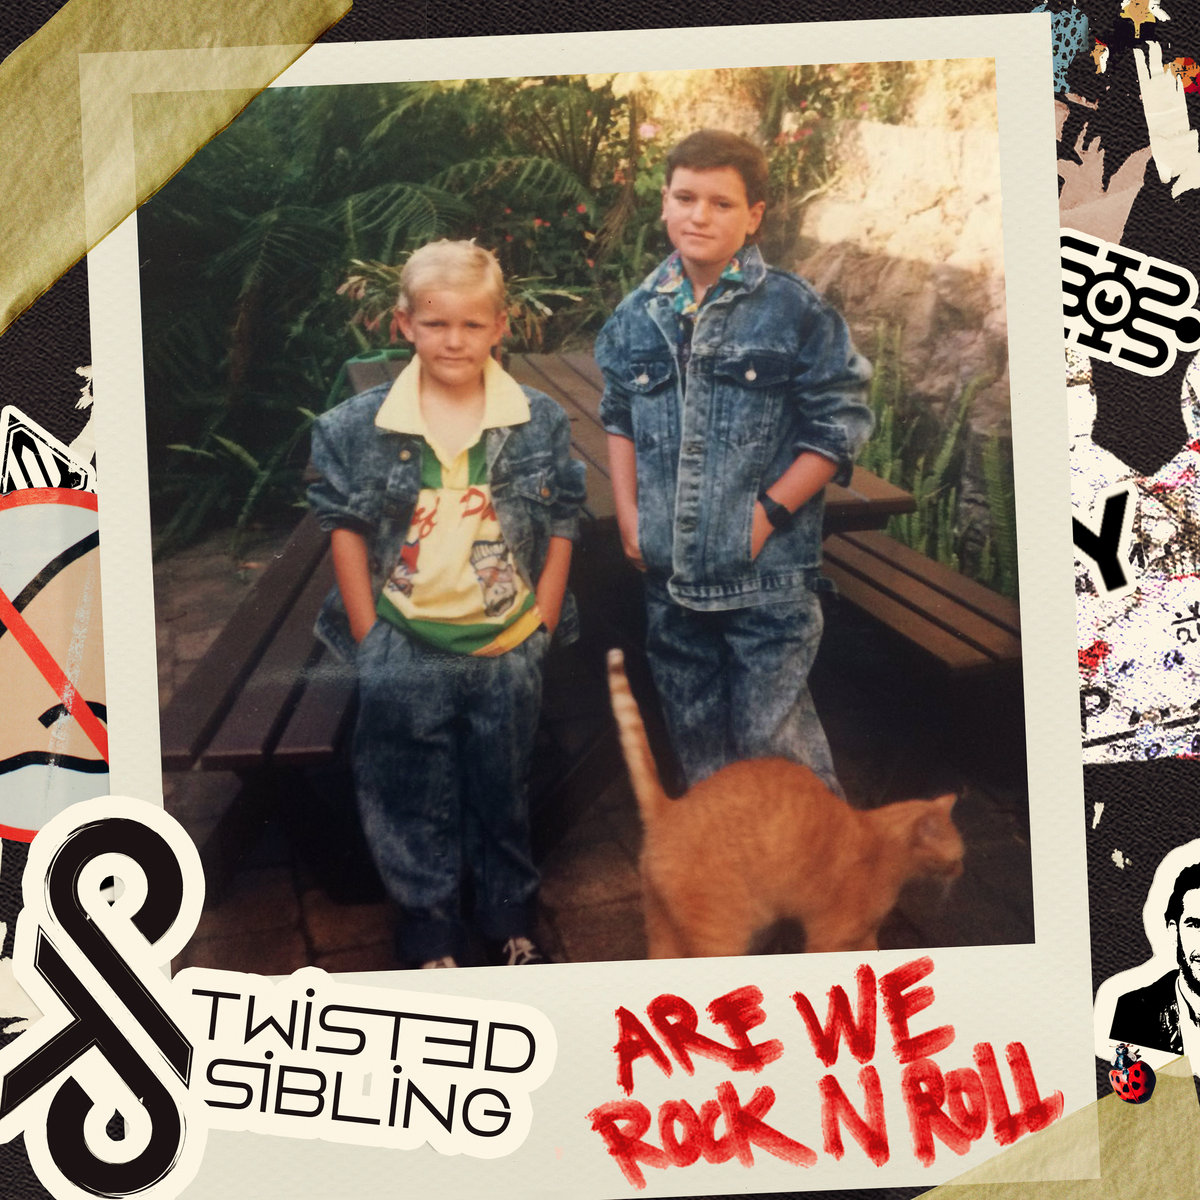 twisted sibling are we rock'n'roll